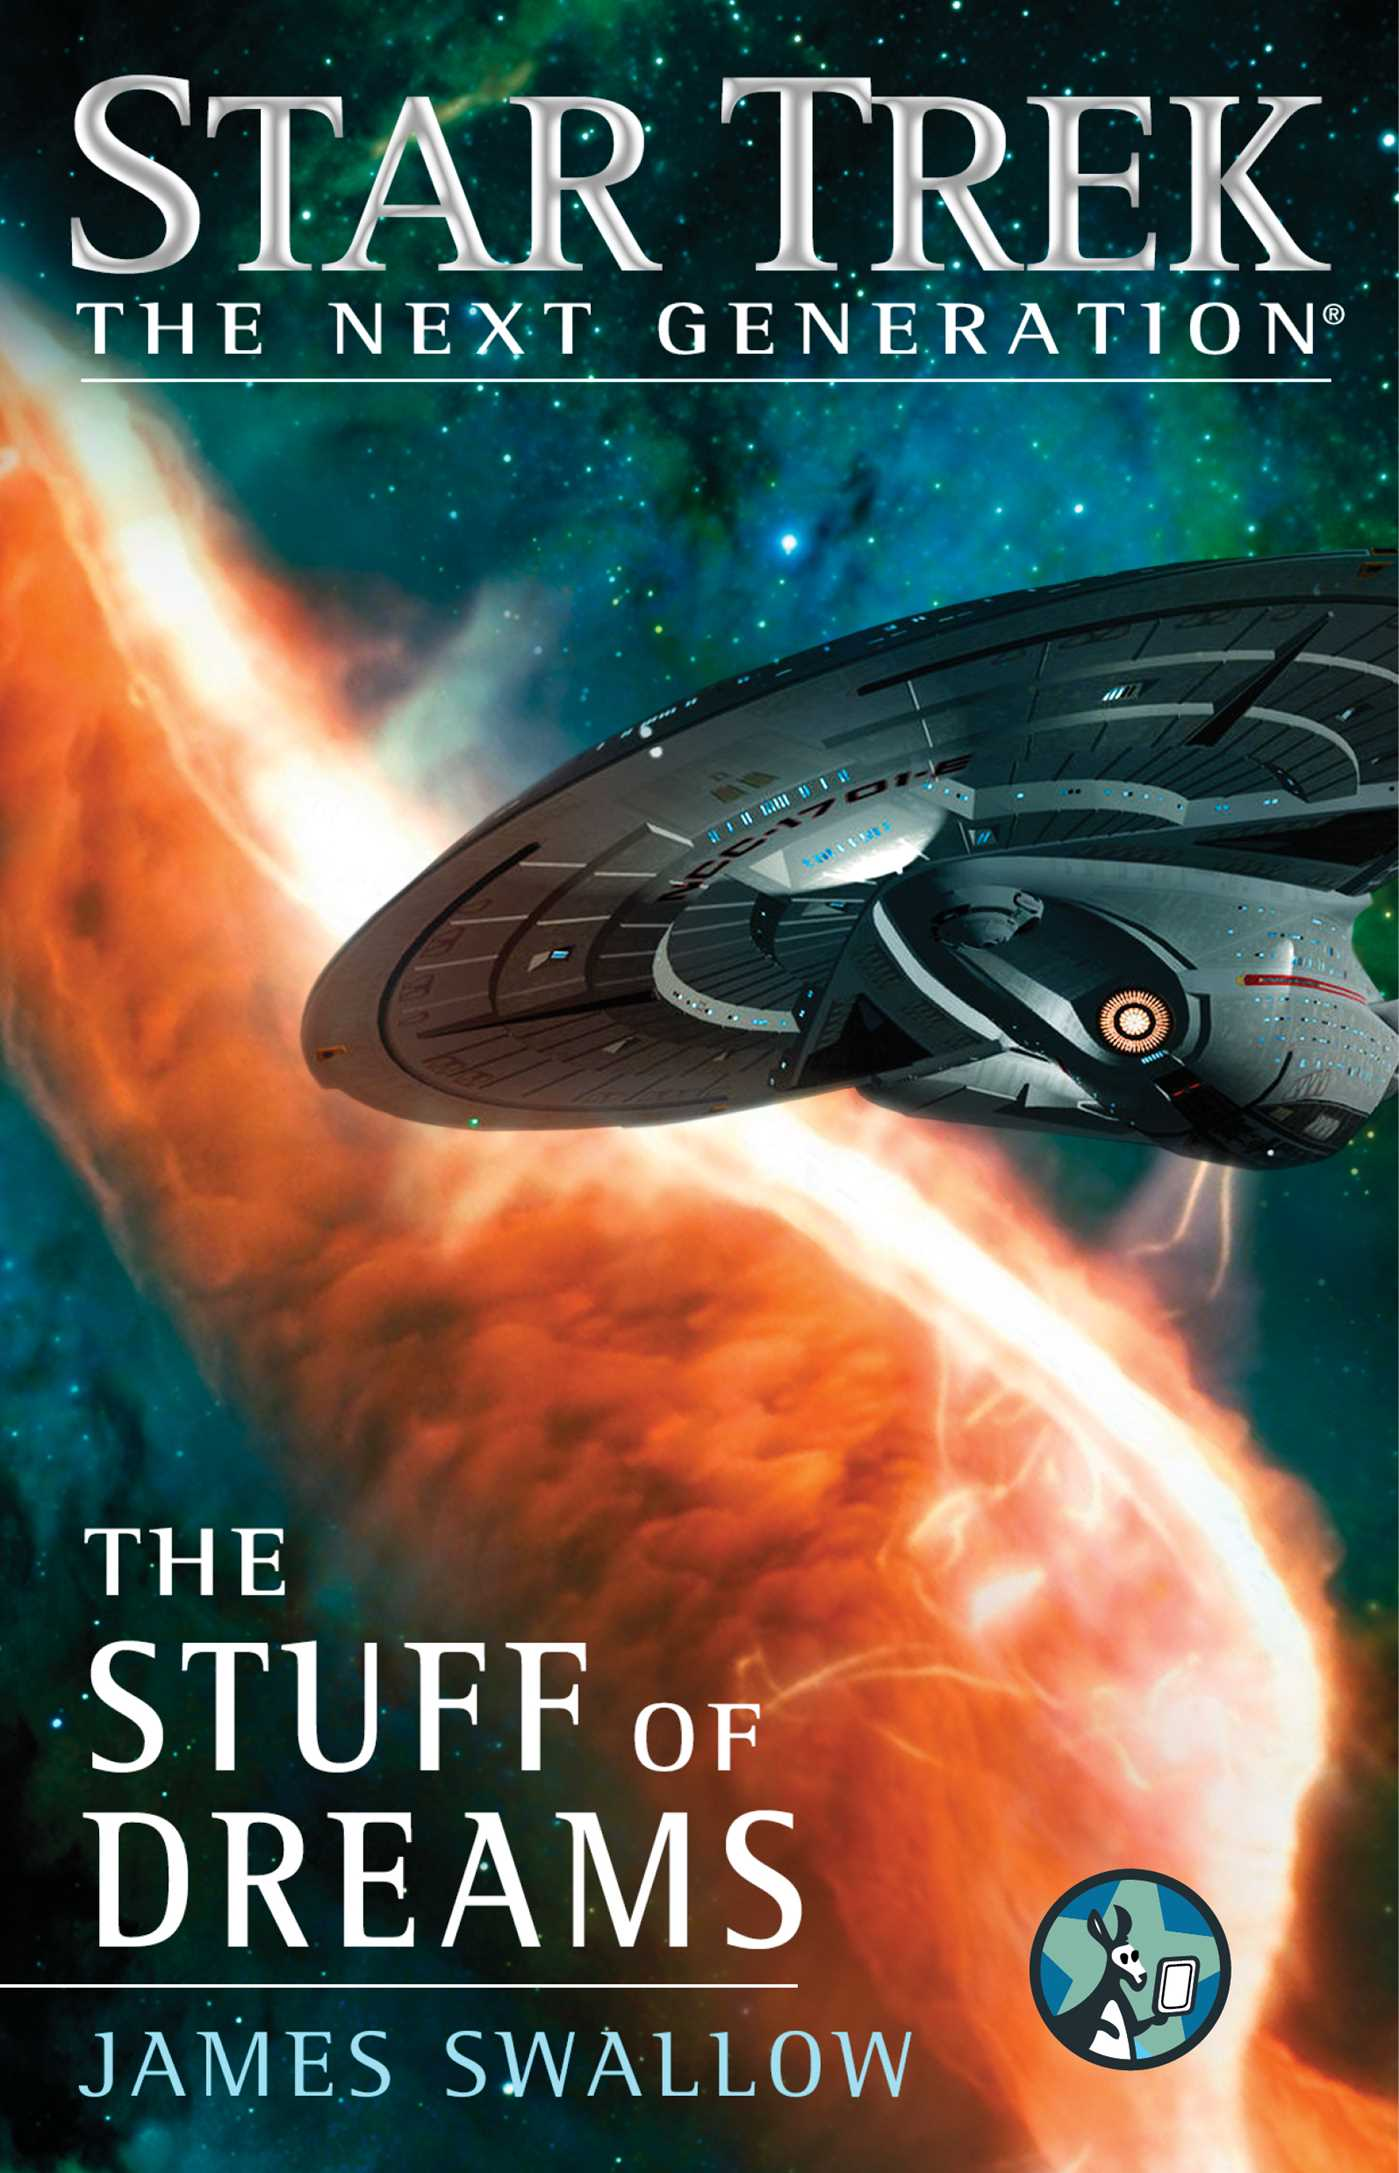 Star trek the next generation the stuff of dreams 9781451696615 hr